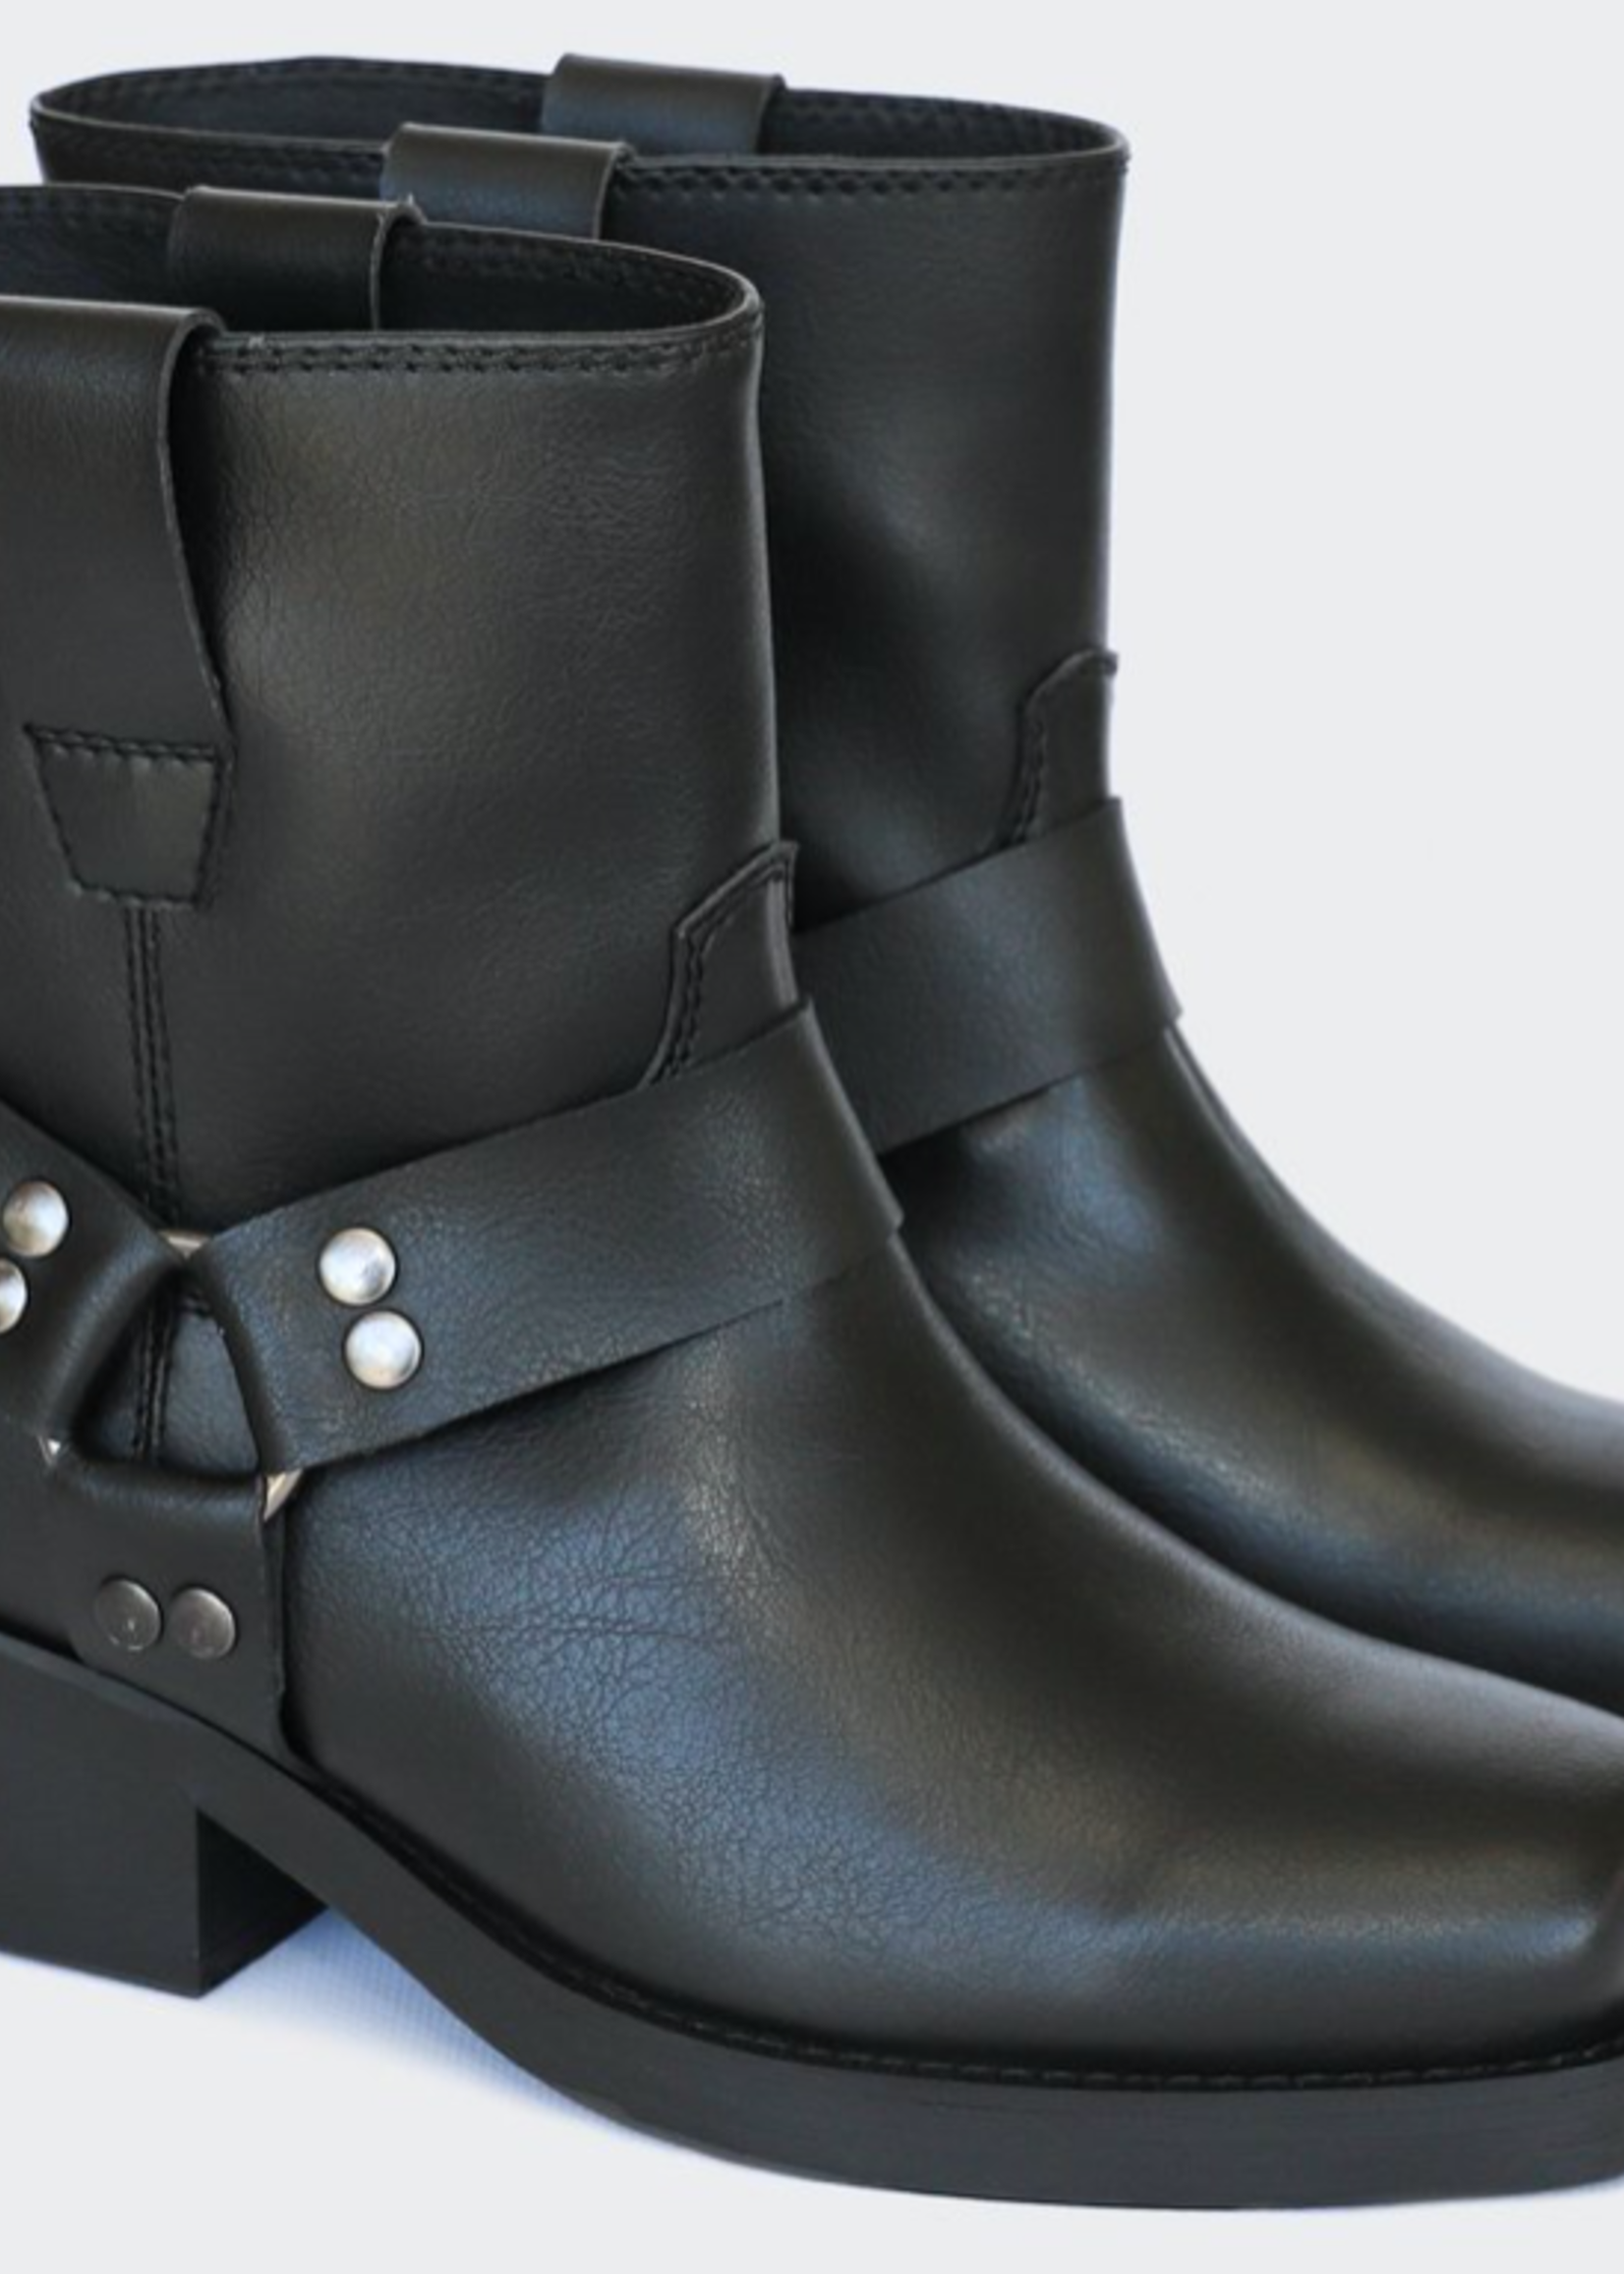 Good Guys Don't Wear Leather Chuck Low Top Motorcycle Boots